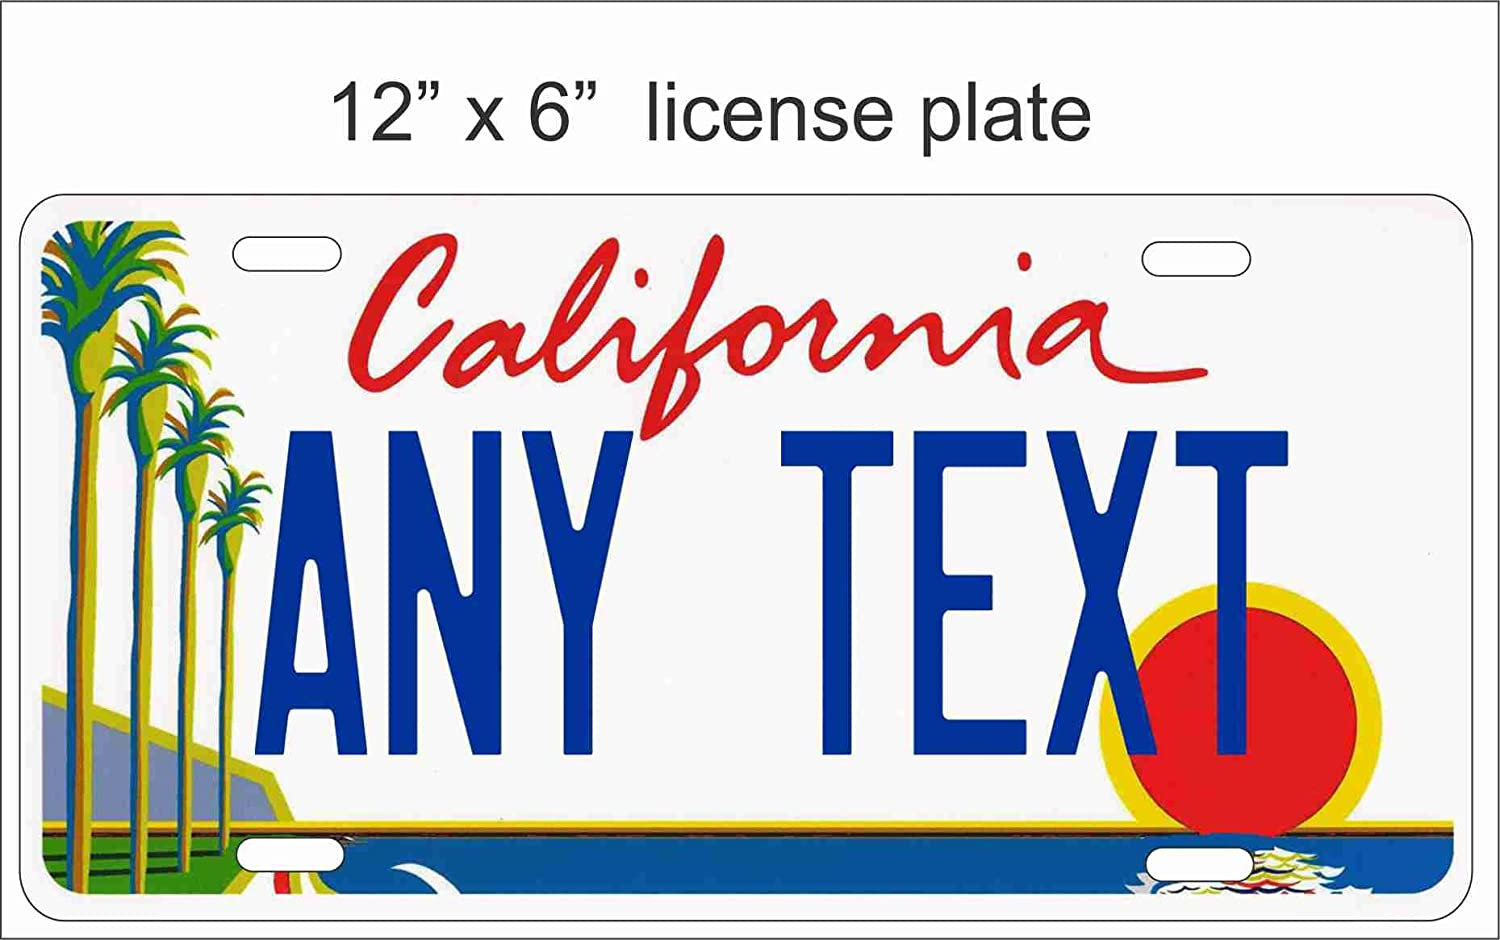 California Customize with Your Text Novelty Reproduction License plate